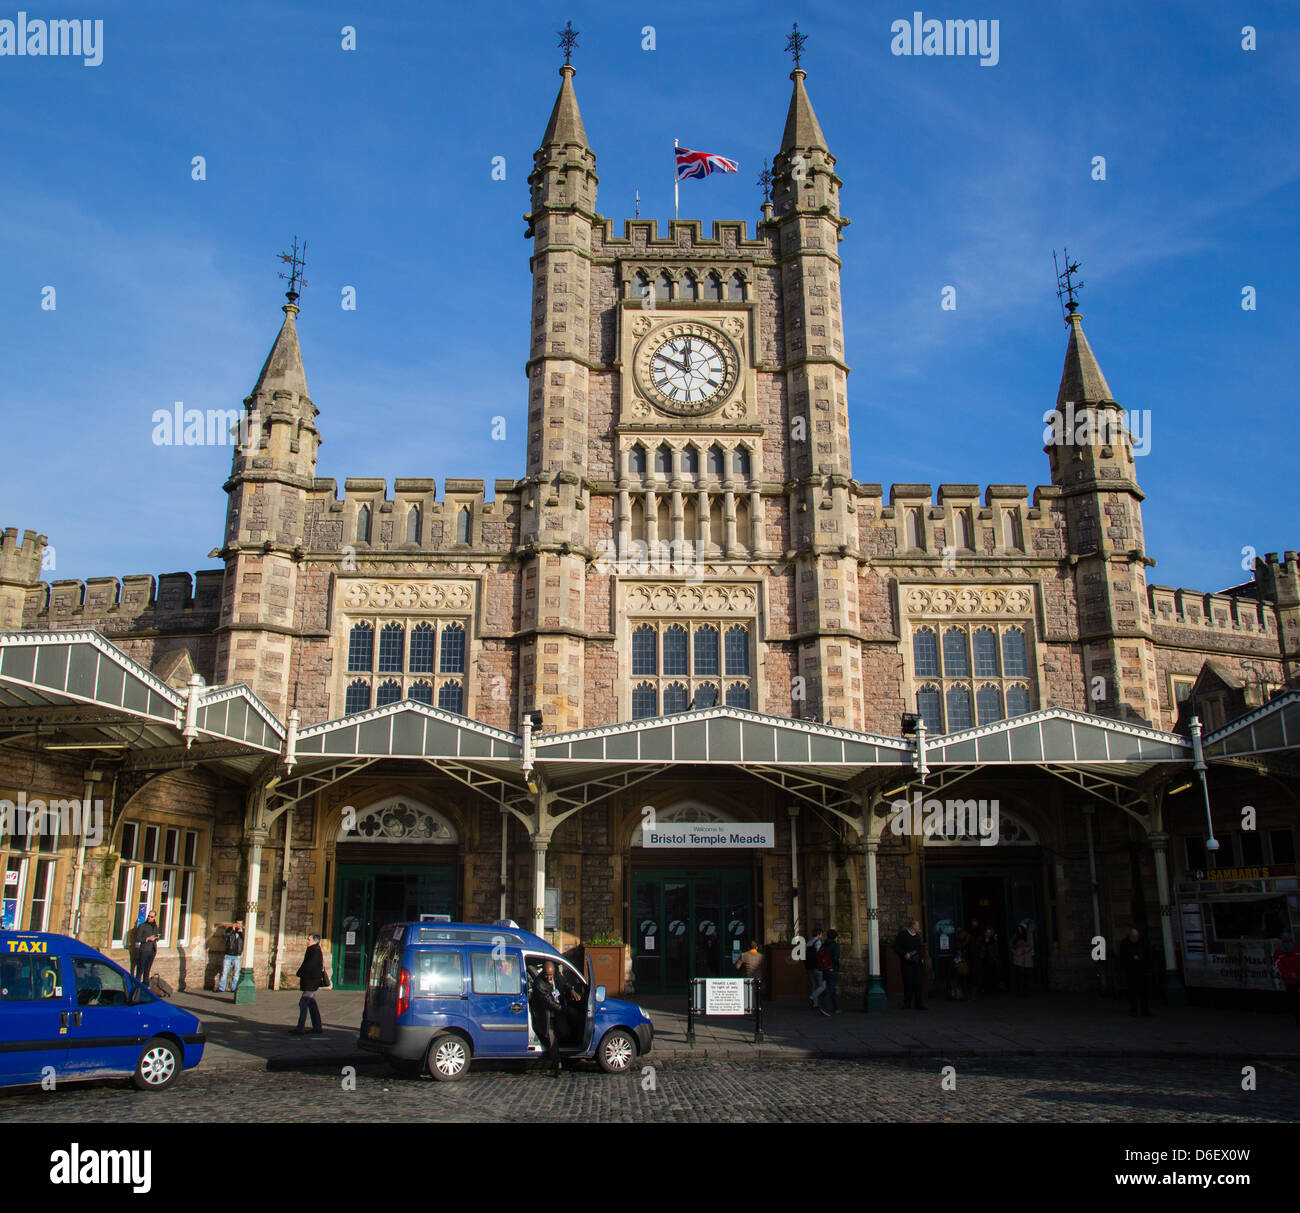 Temple Meads railway station serves the City of Bristol UK Stock Photo